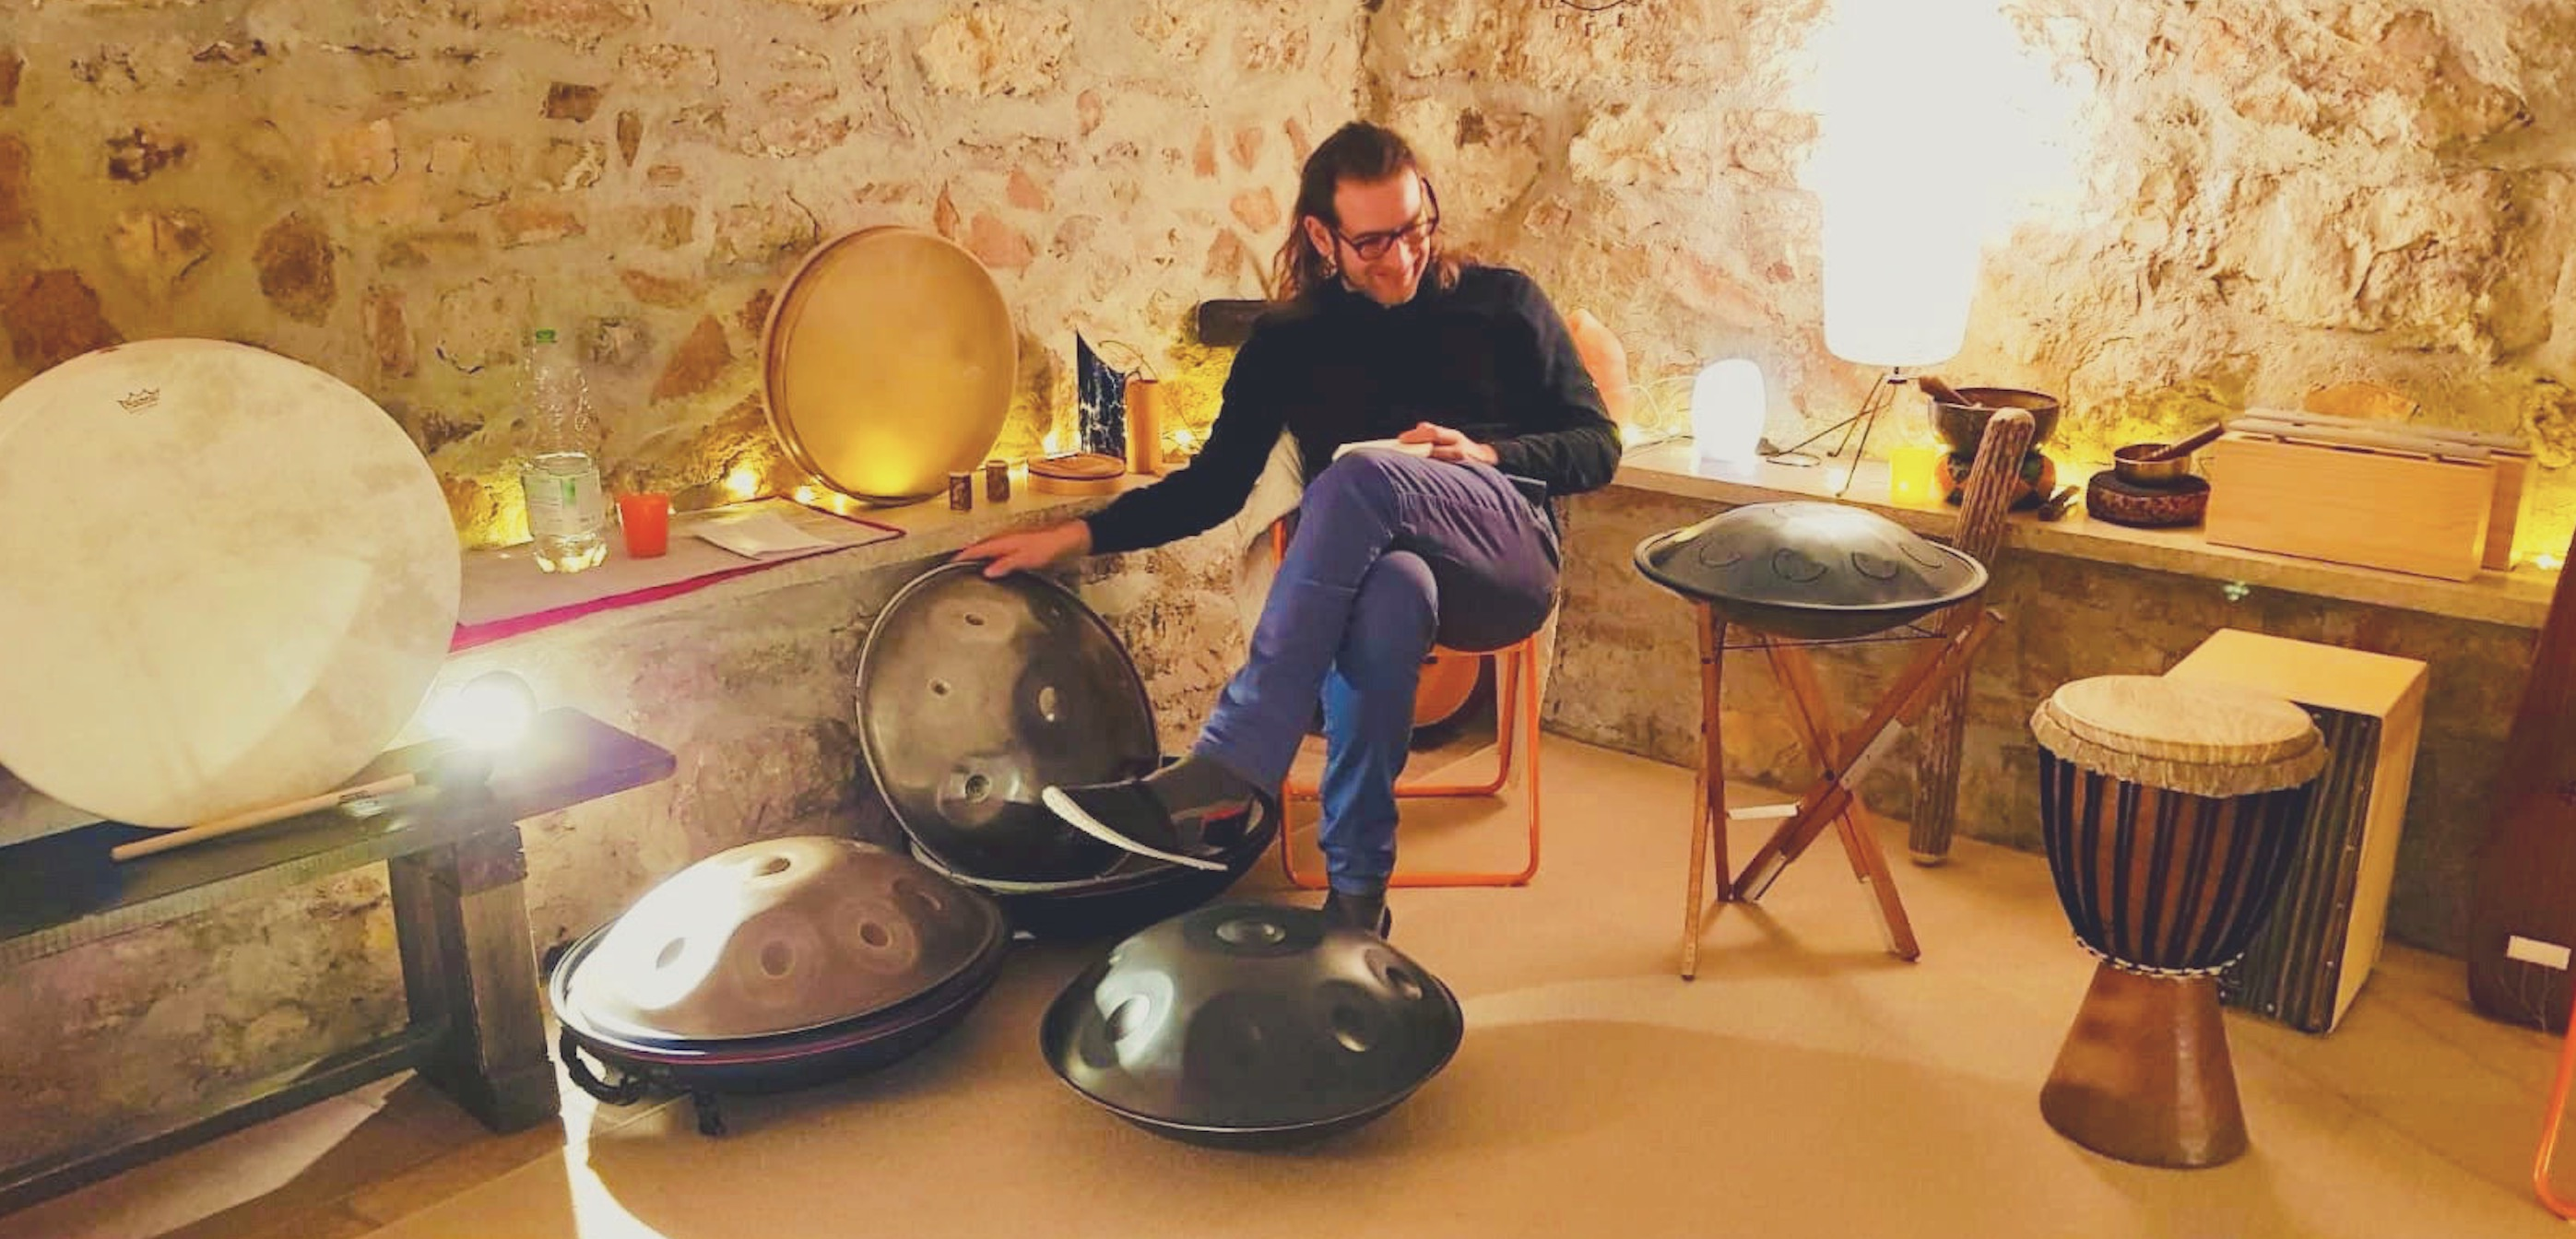 Tickets for Rhythm & Flow Handpan Workshop Series in Kihei from BrightStar Live Events